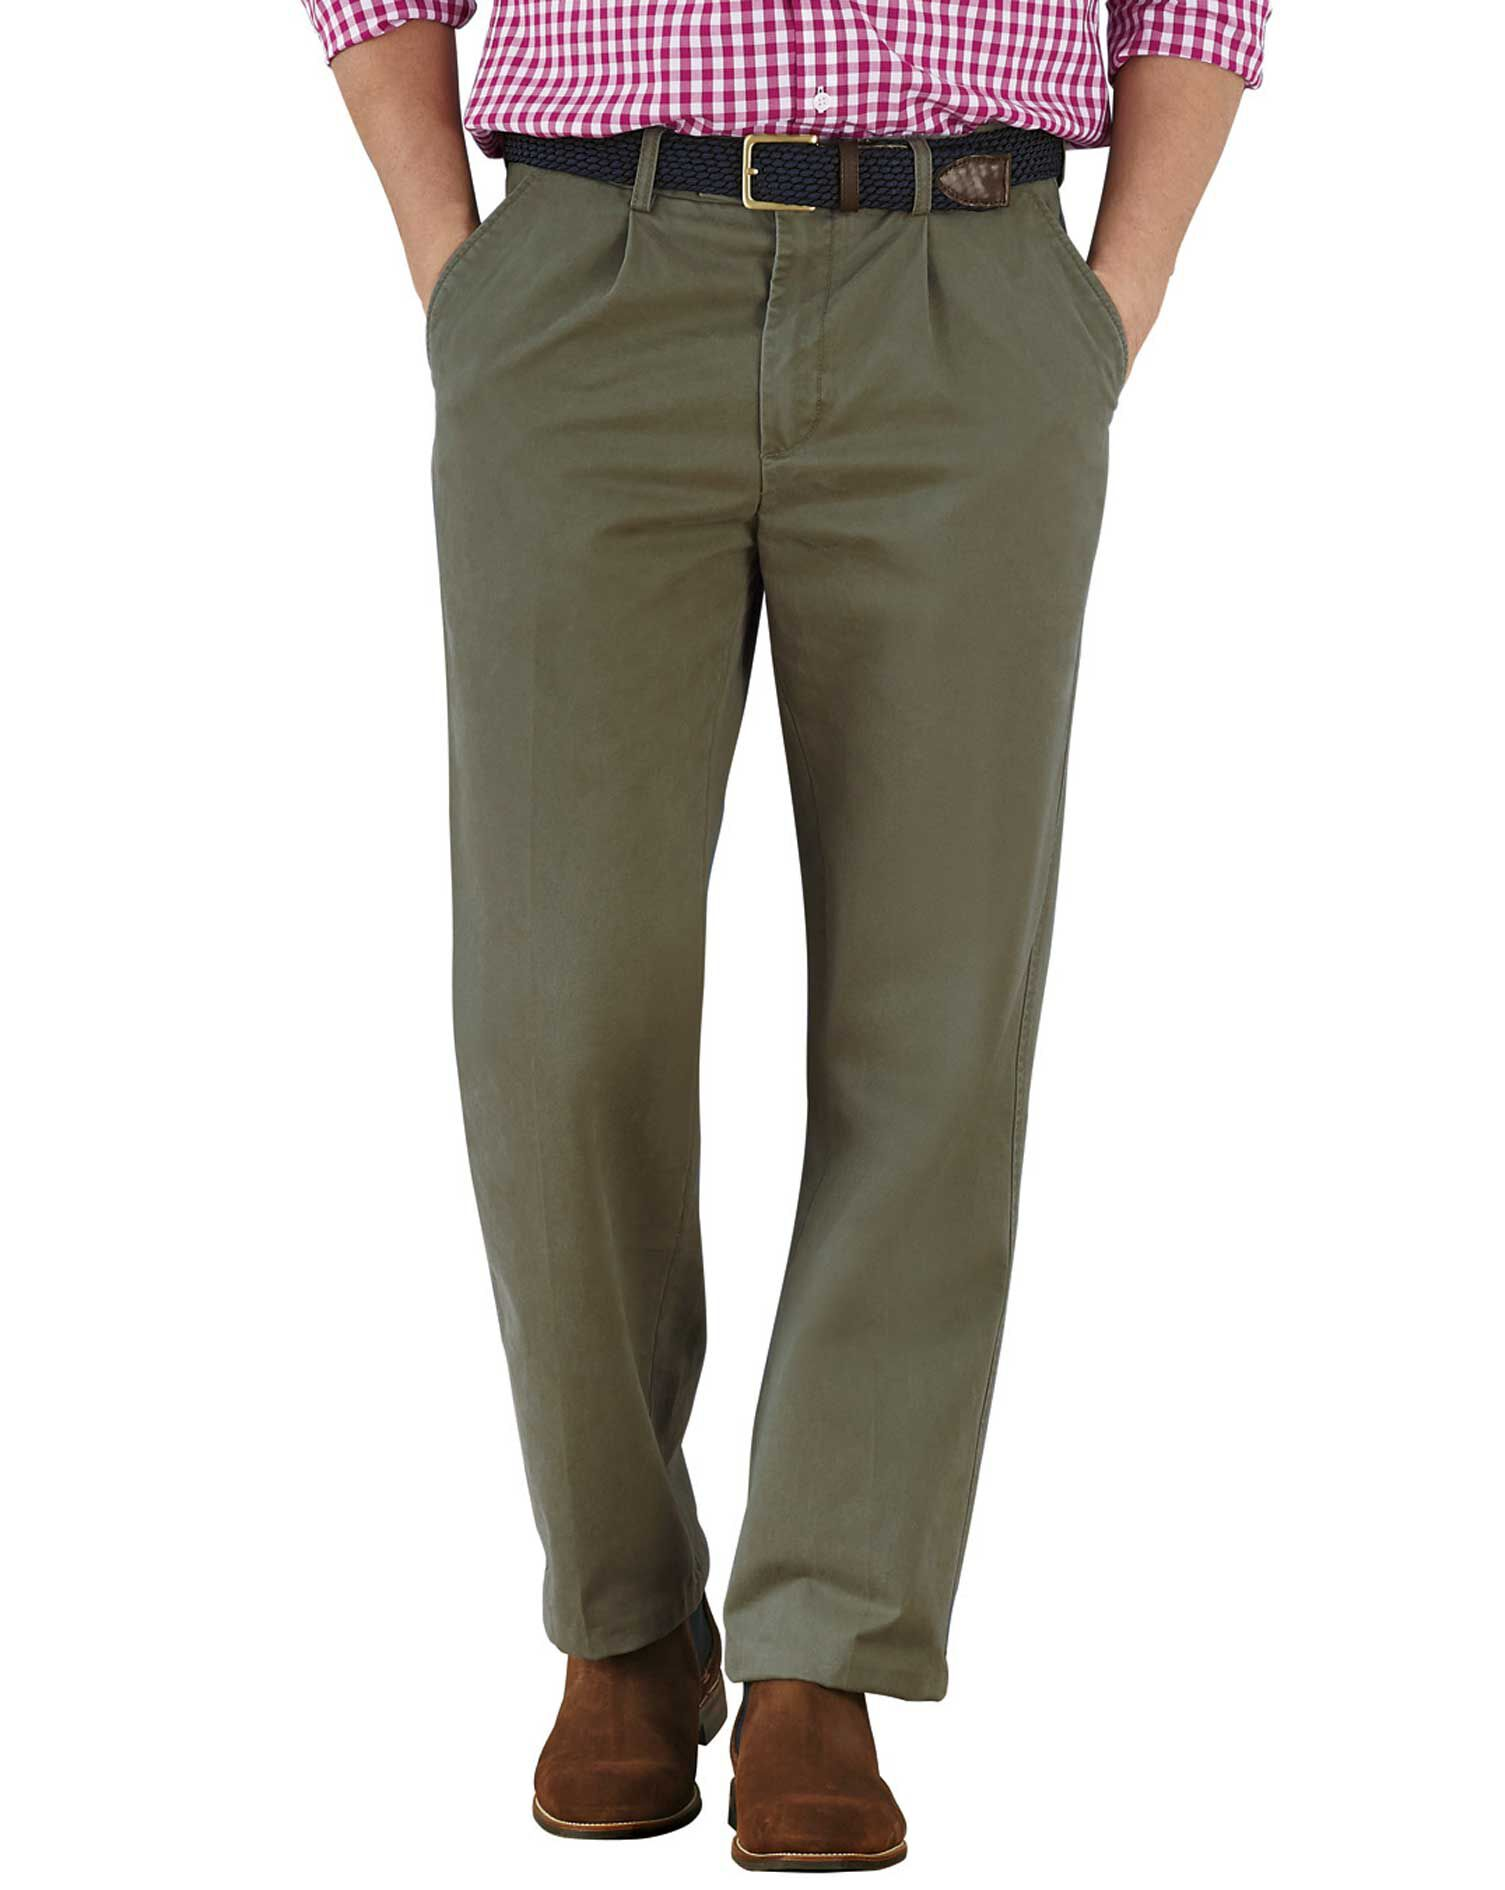 Charles Tyrwhitt Olive Classic Fit Single Pleat Cotton Chino Pants Size W36 L38